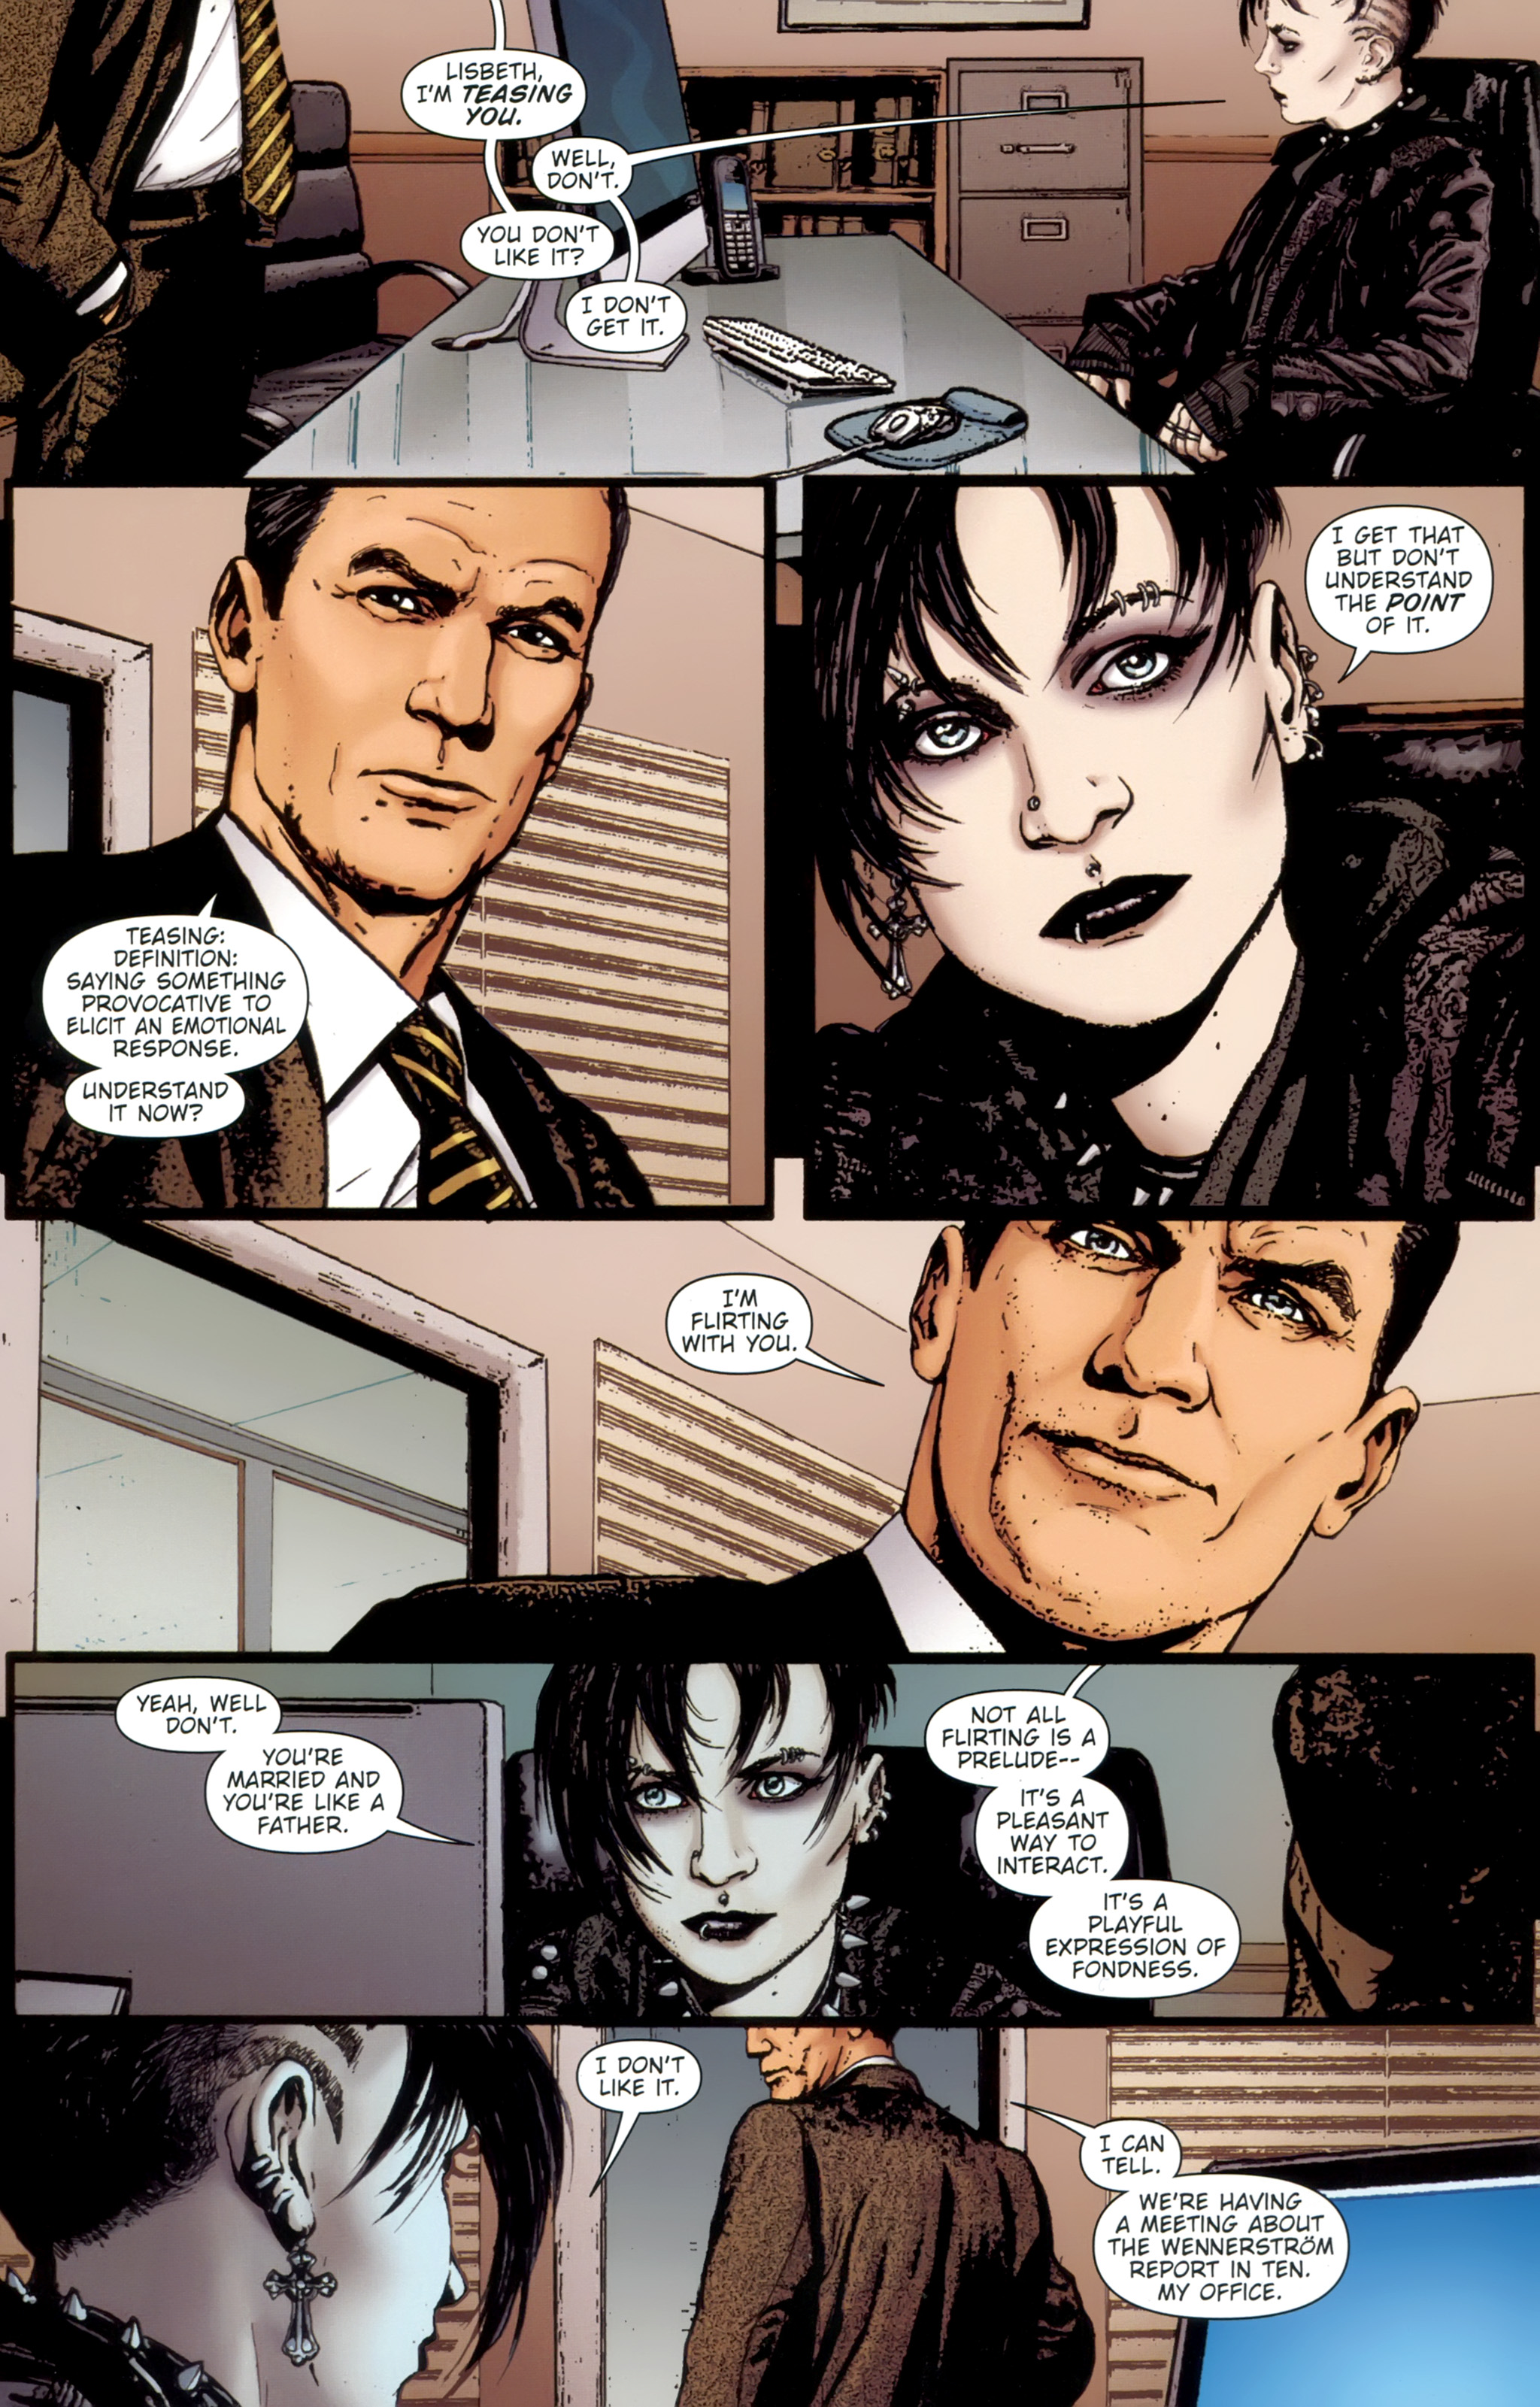 Read online The Girl With the Dragon Tattoo comic -  Issue # TPB 1 - 77